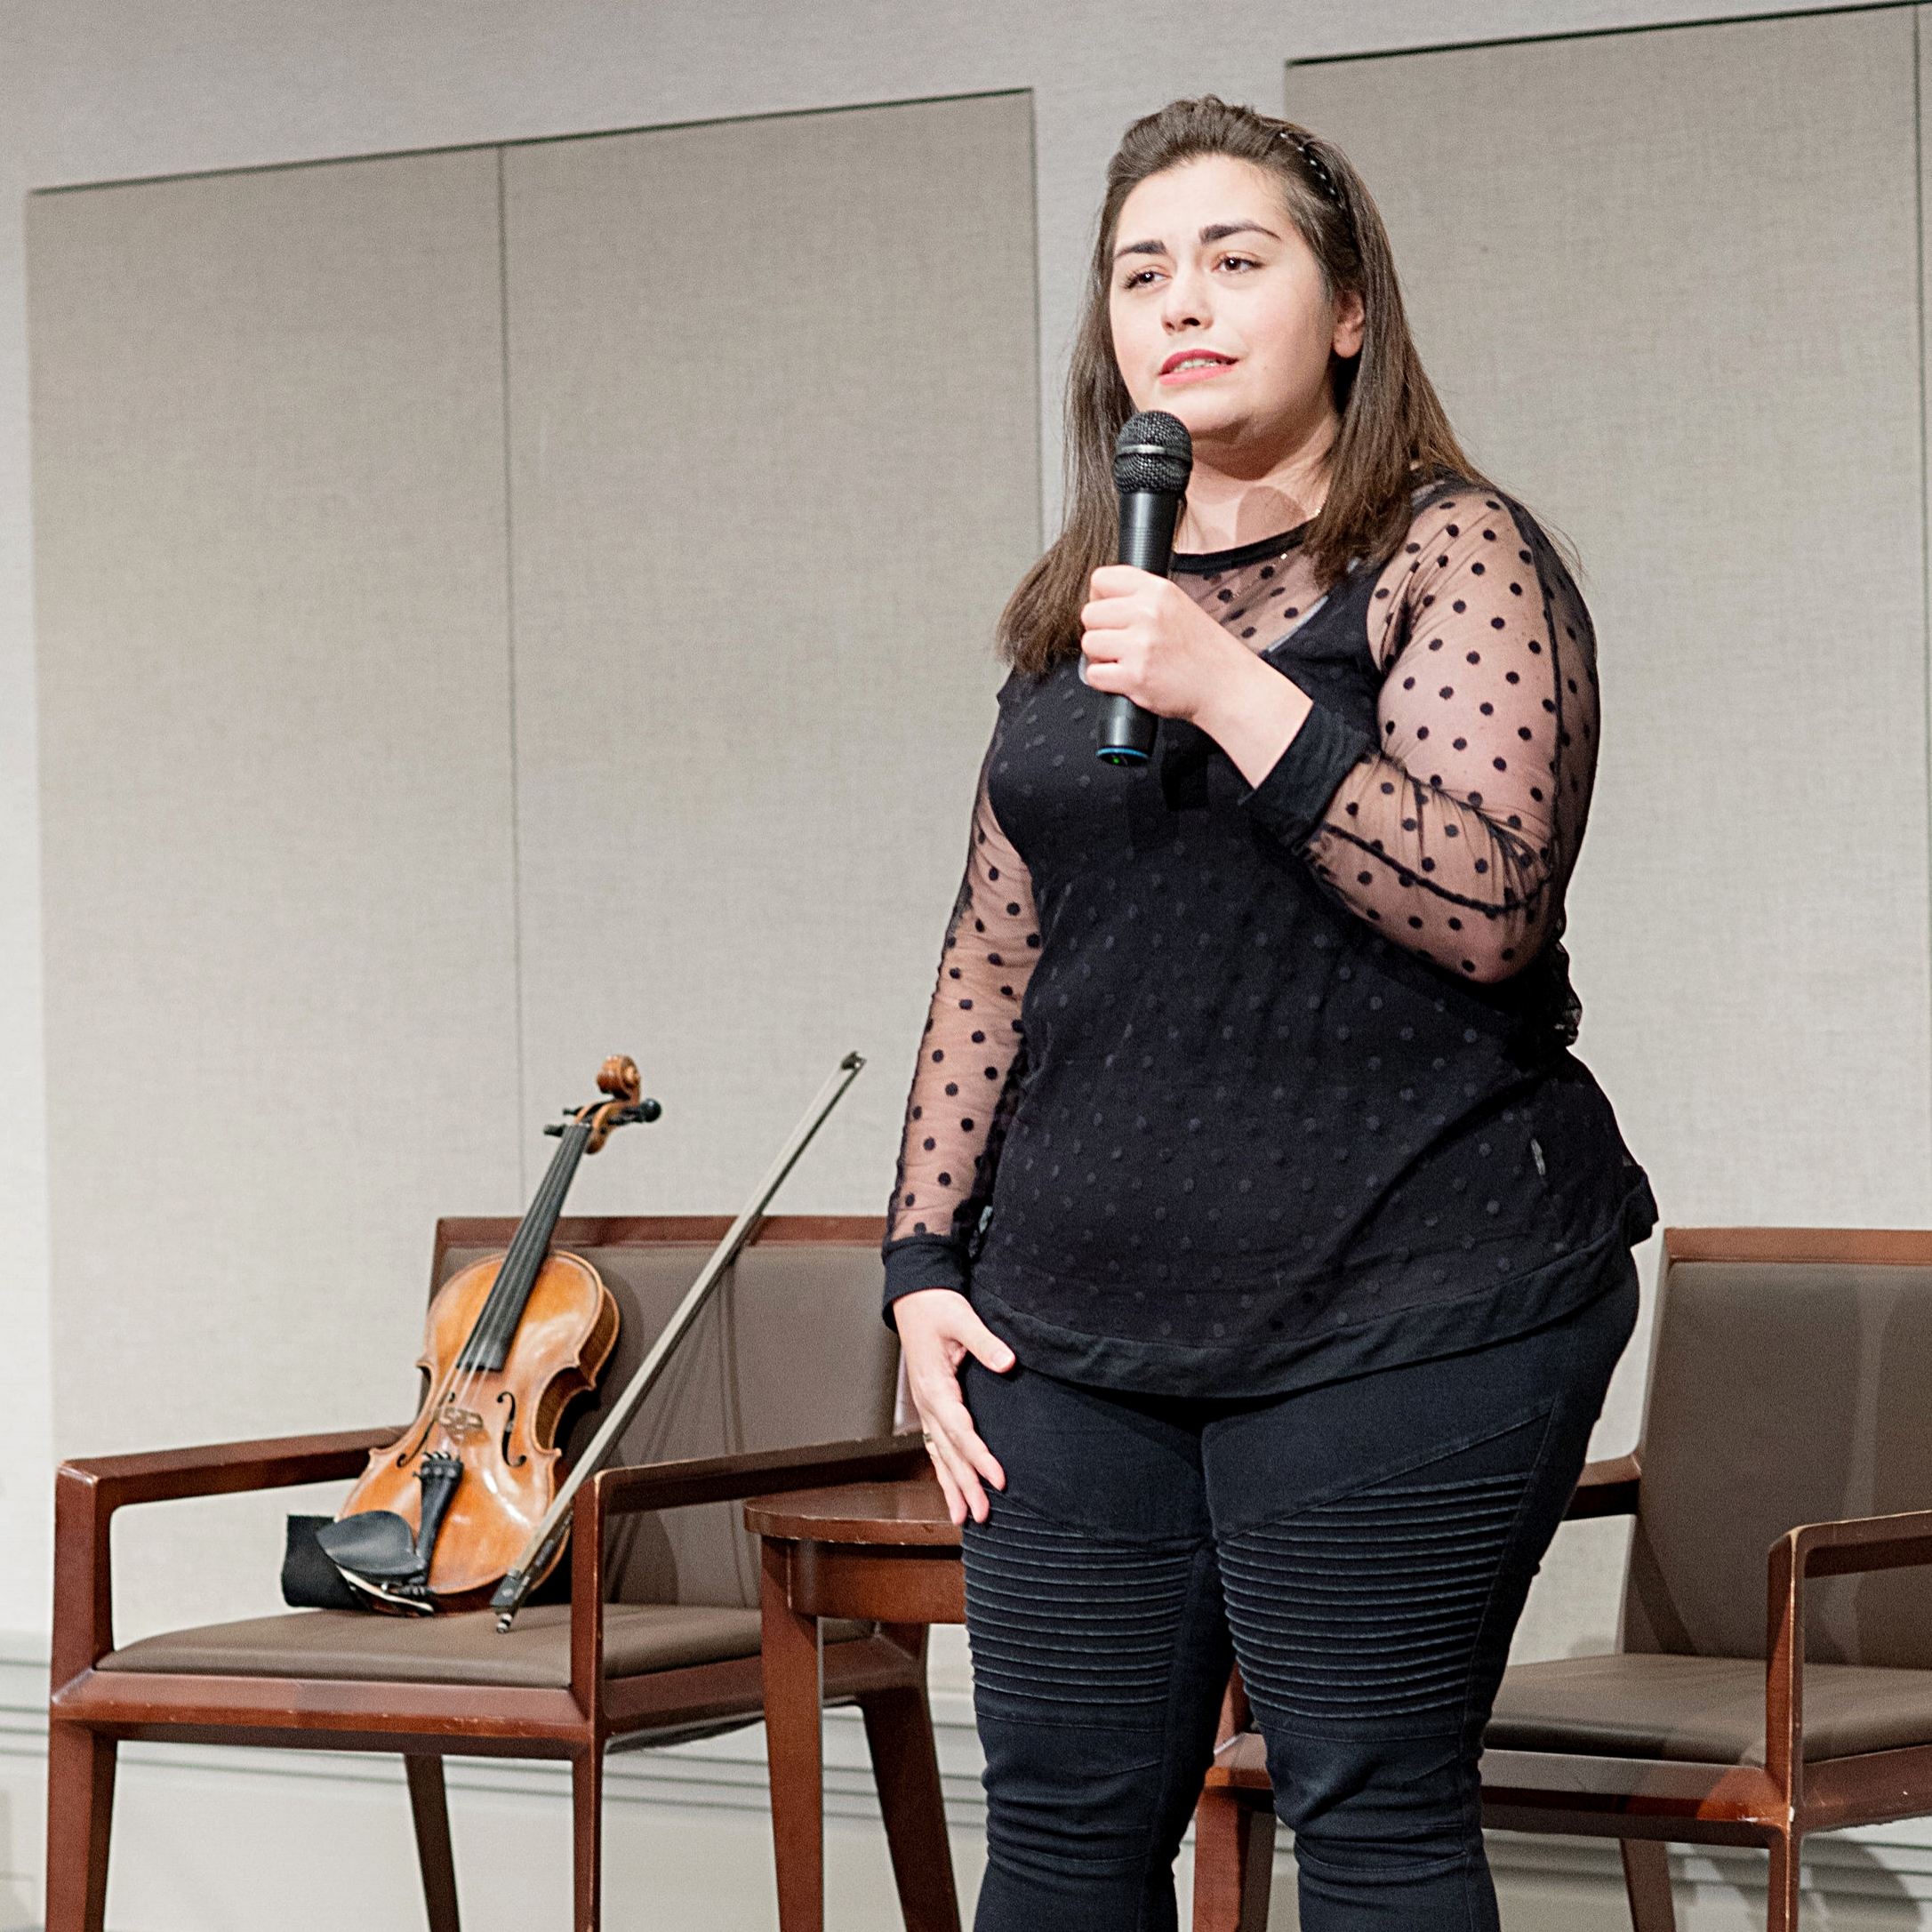 Violinist Mariela Shaker discusses her experiences as a Syrian refugee from Aleppo.